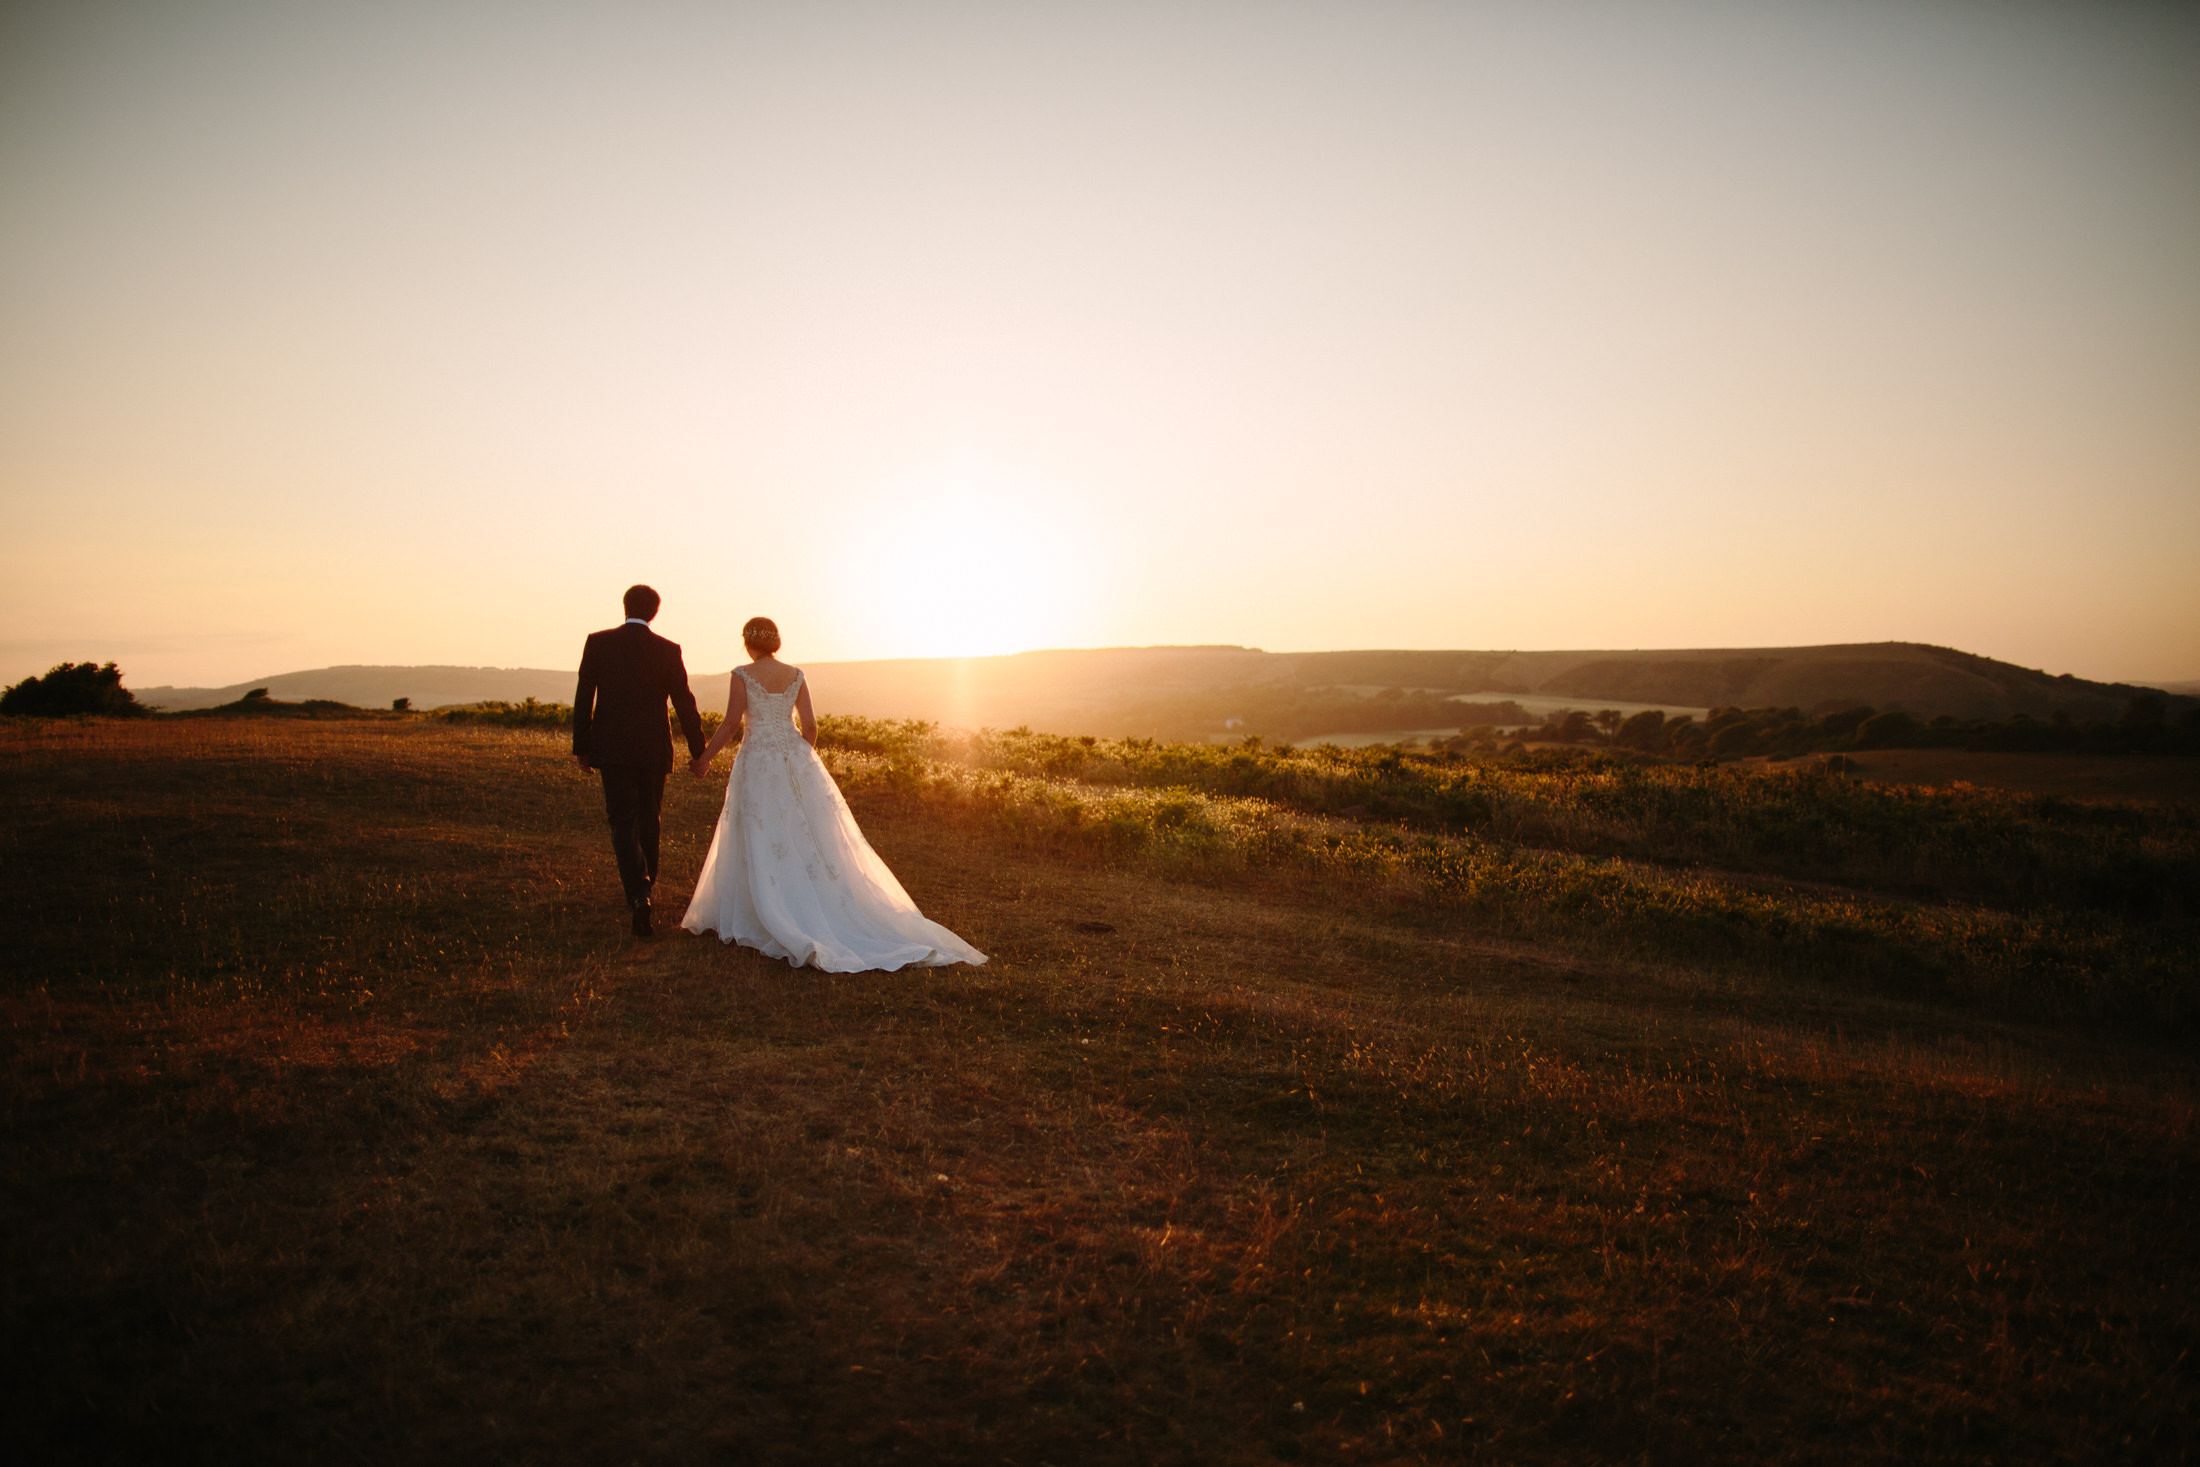 Nisha Haq Photography - Dorset Wedding Photographer - Corfe Castle wedding